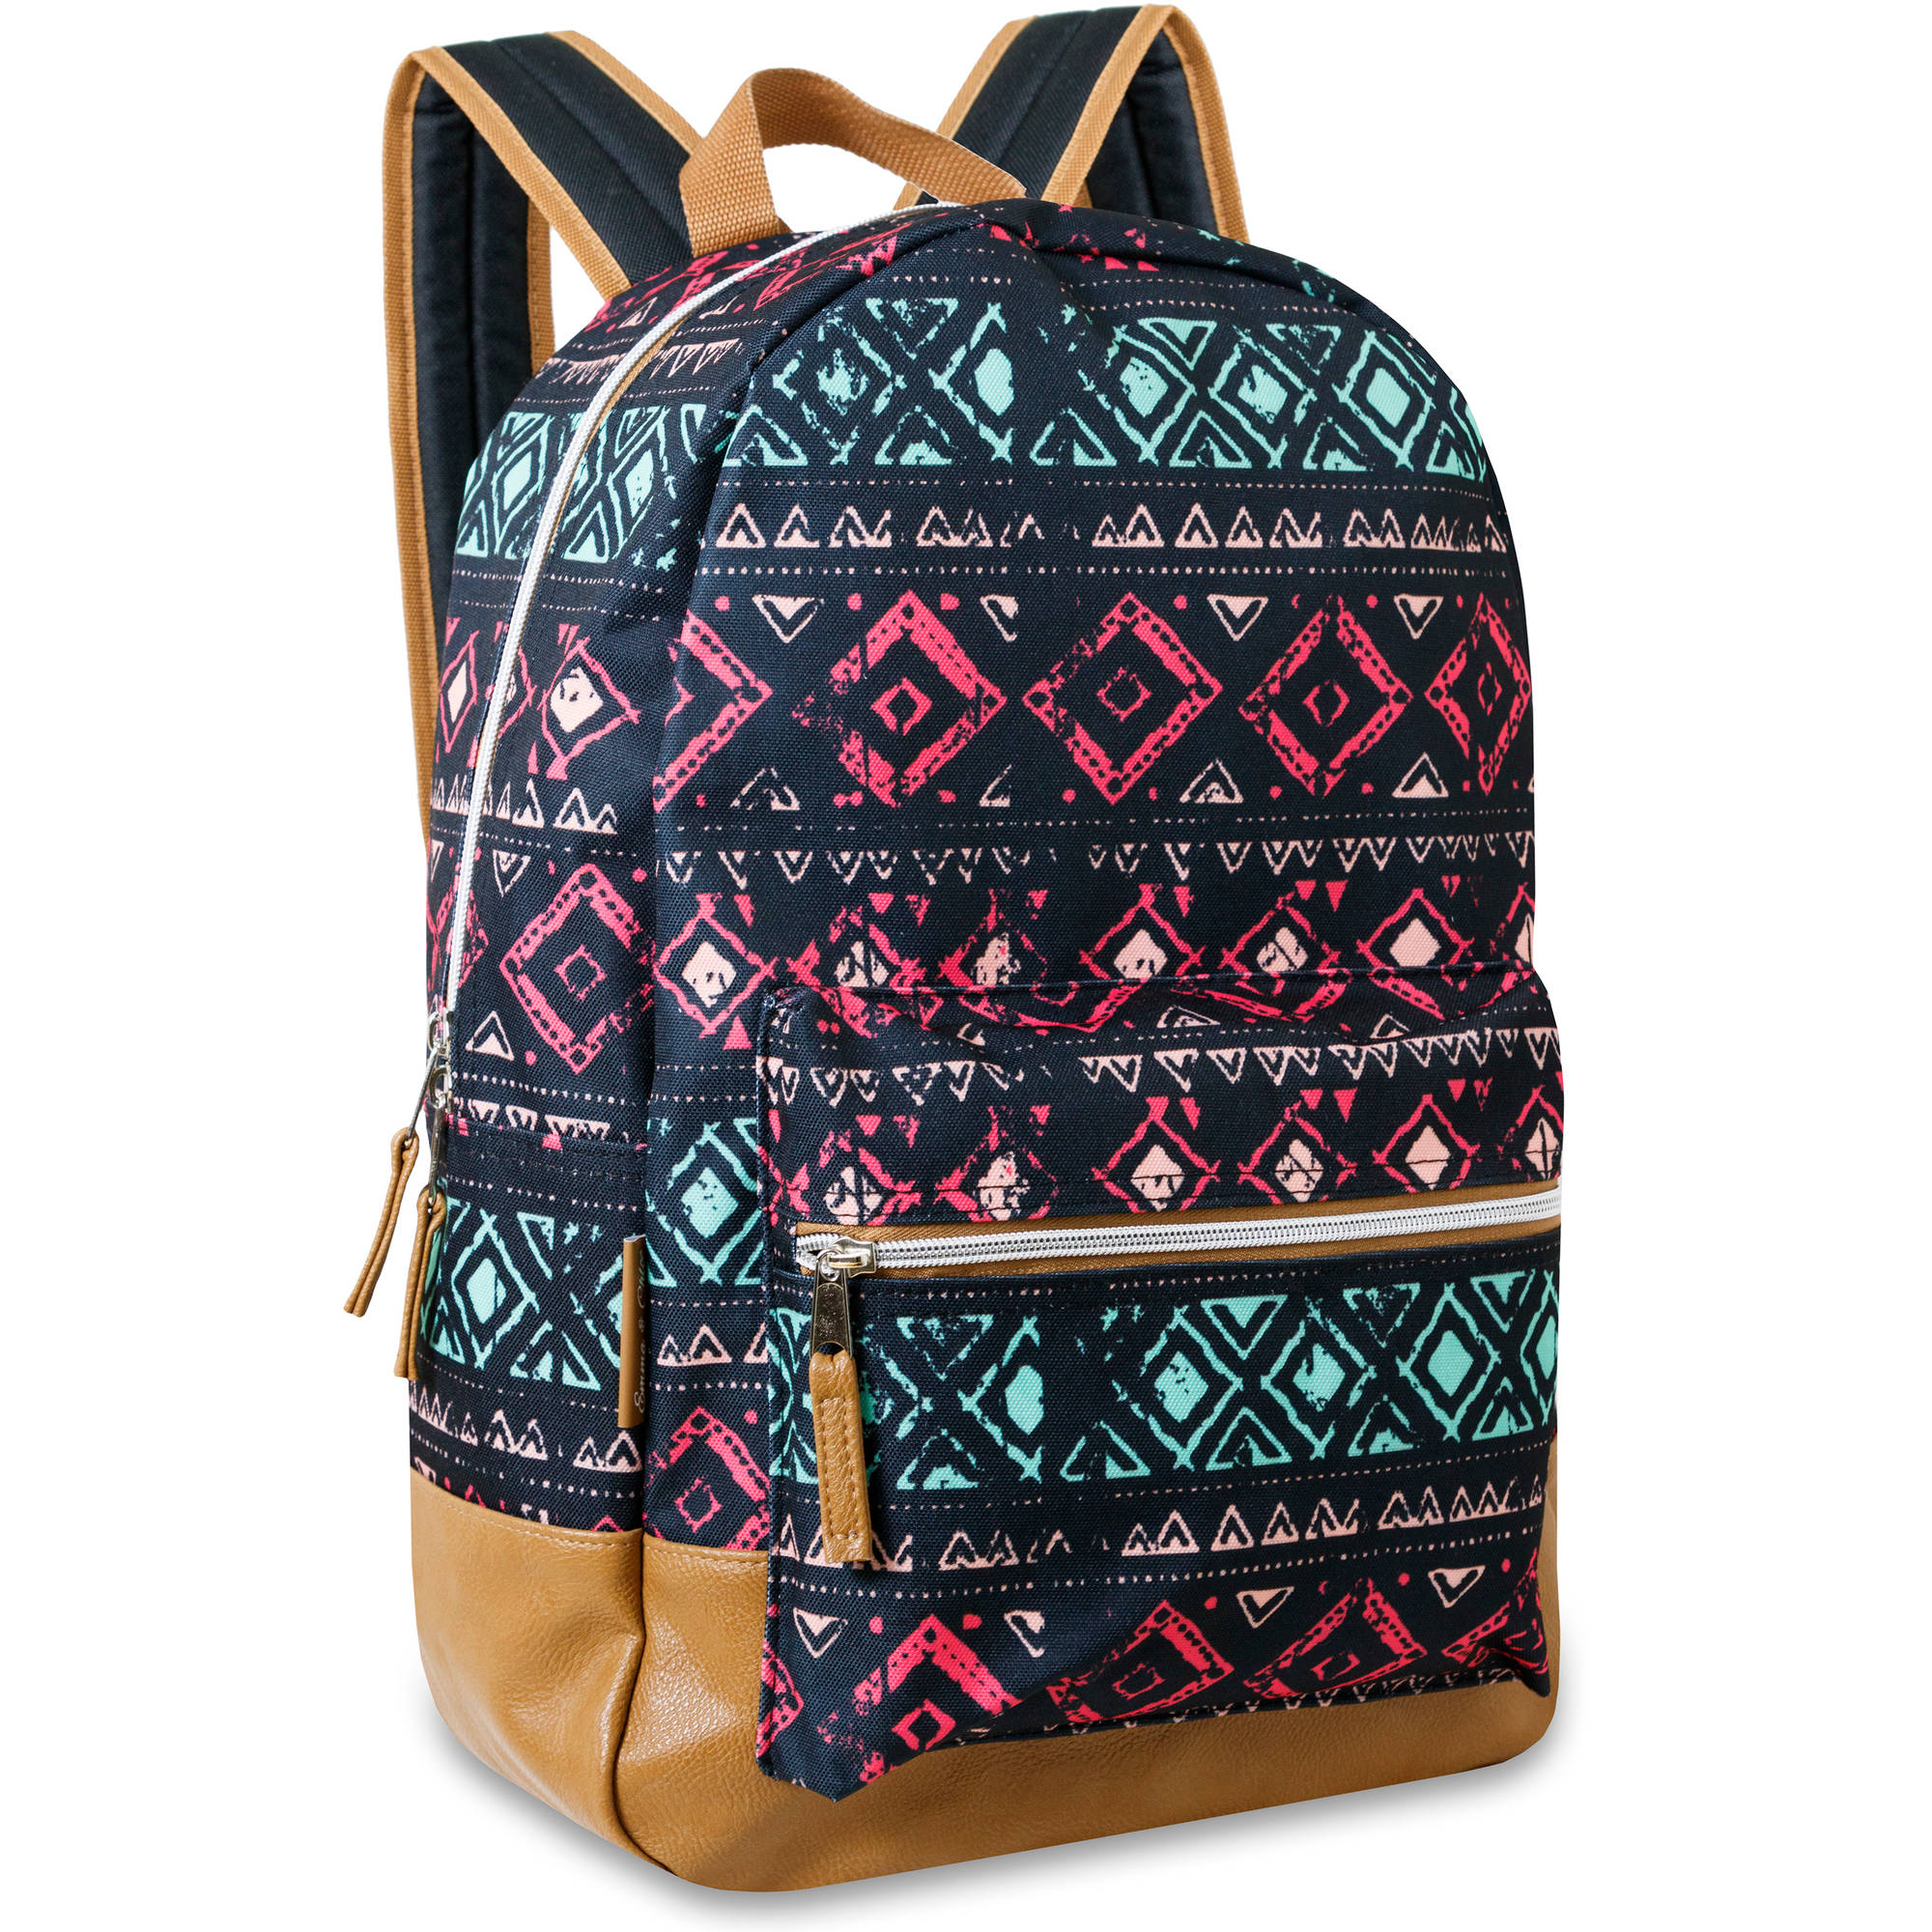 17 Inch Vinyl Bottom Dome Backpack with Front Accessory Pocket